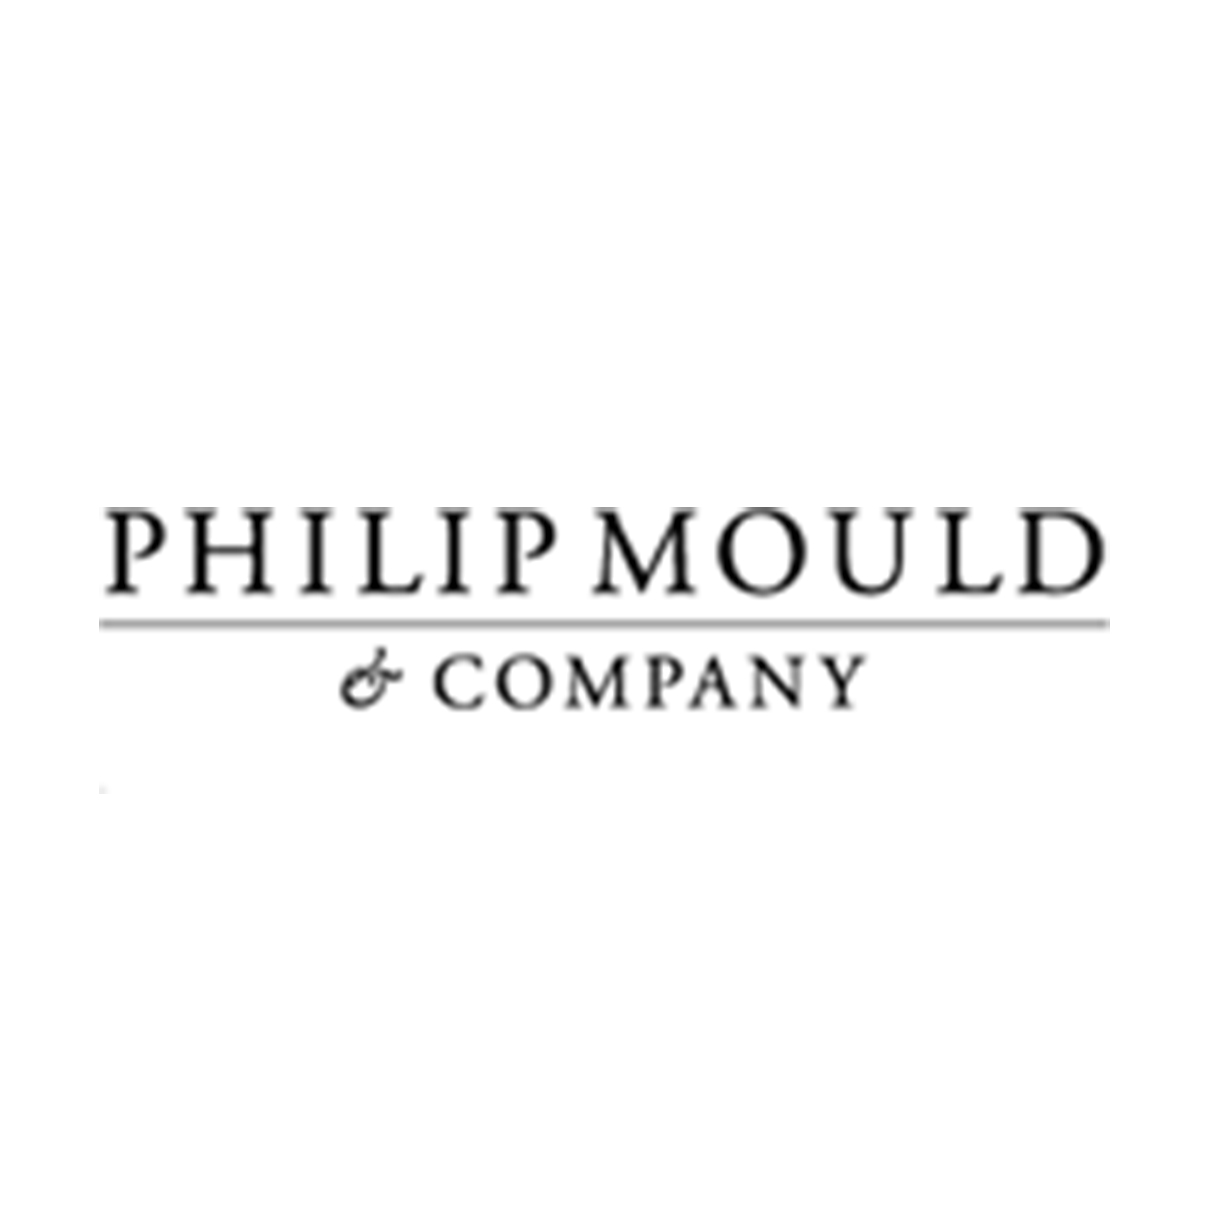 philipmould.jpg